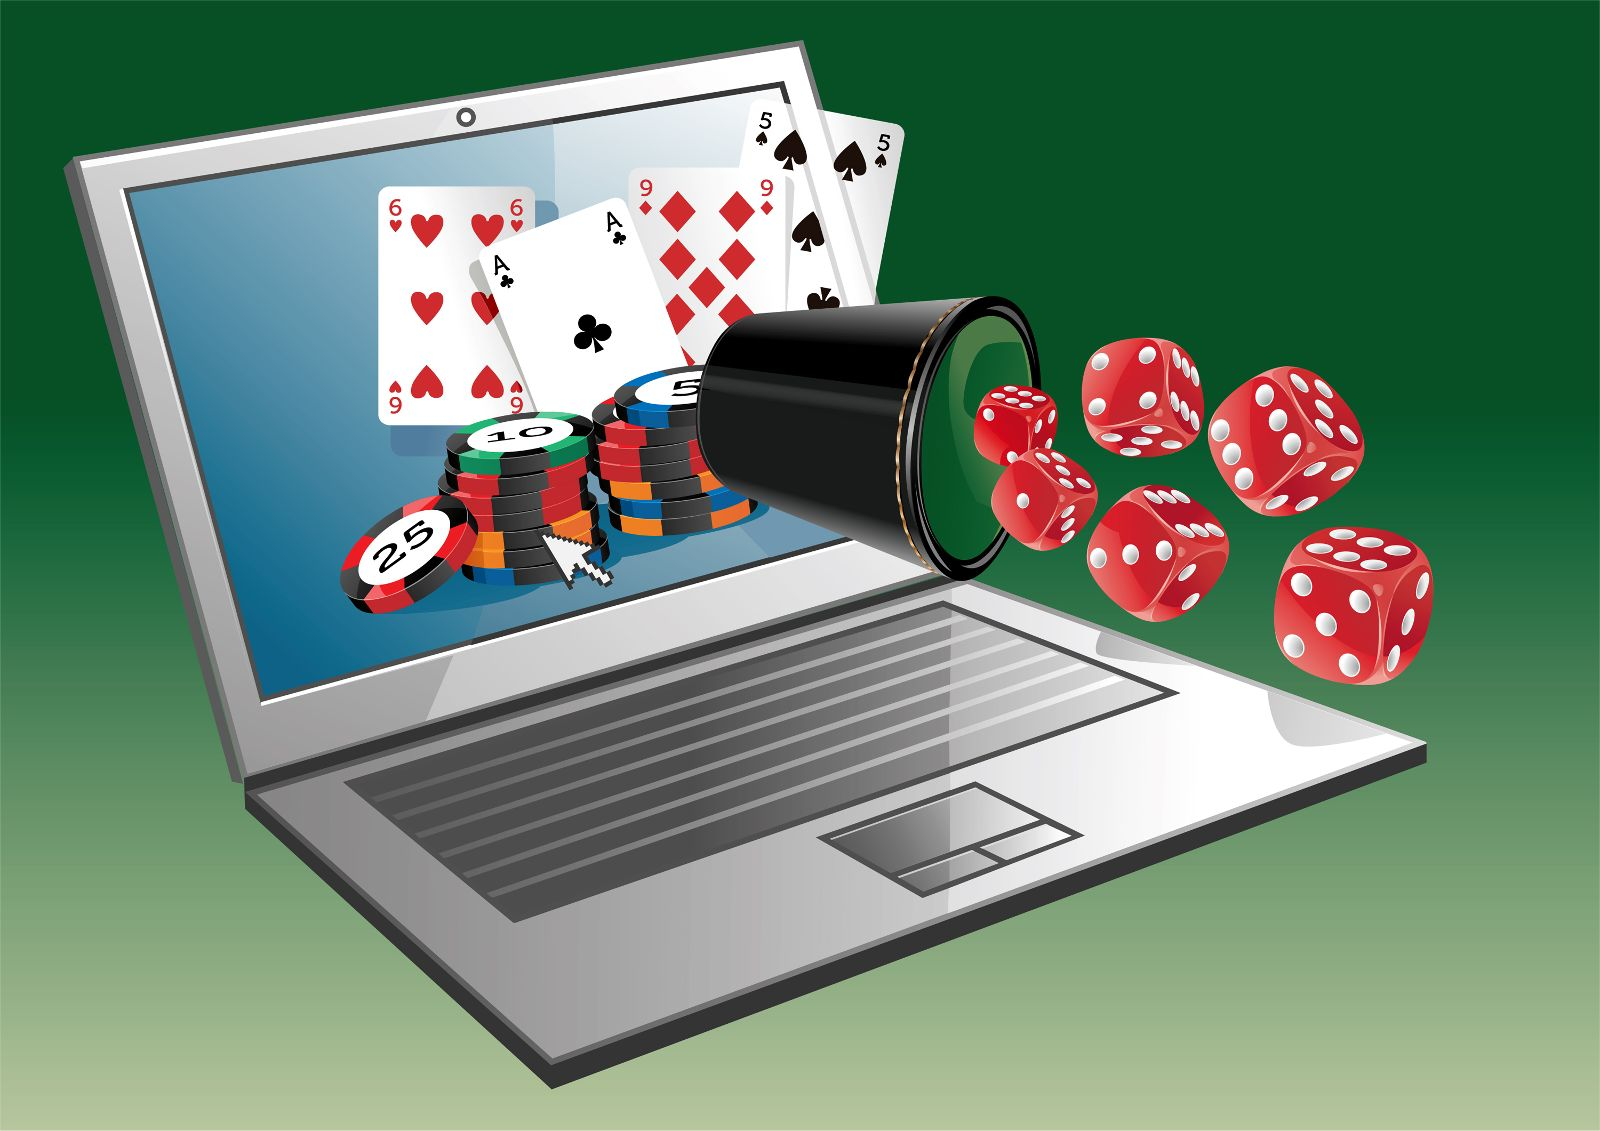 Financial transactions in online casinos – things we should know